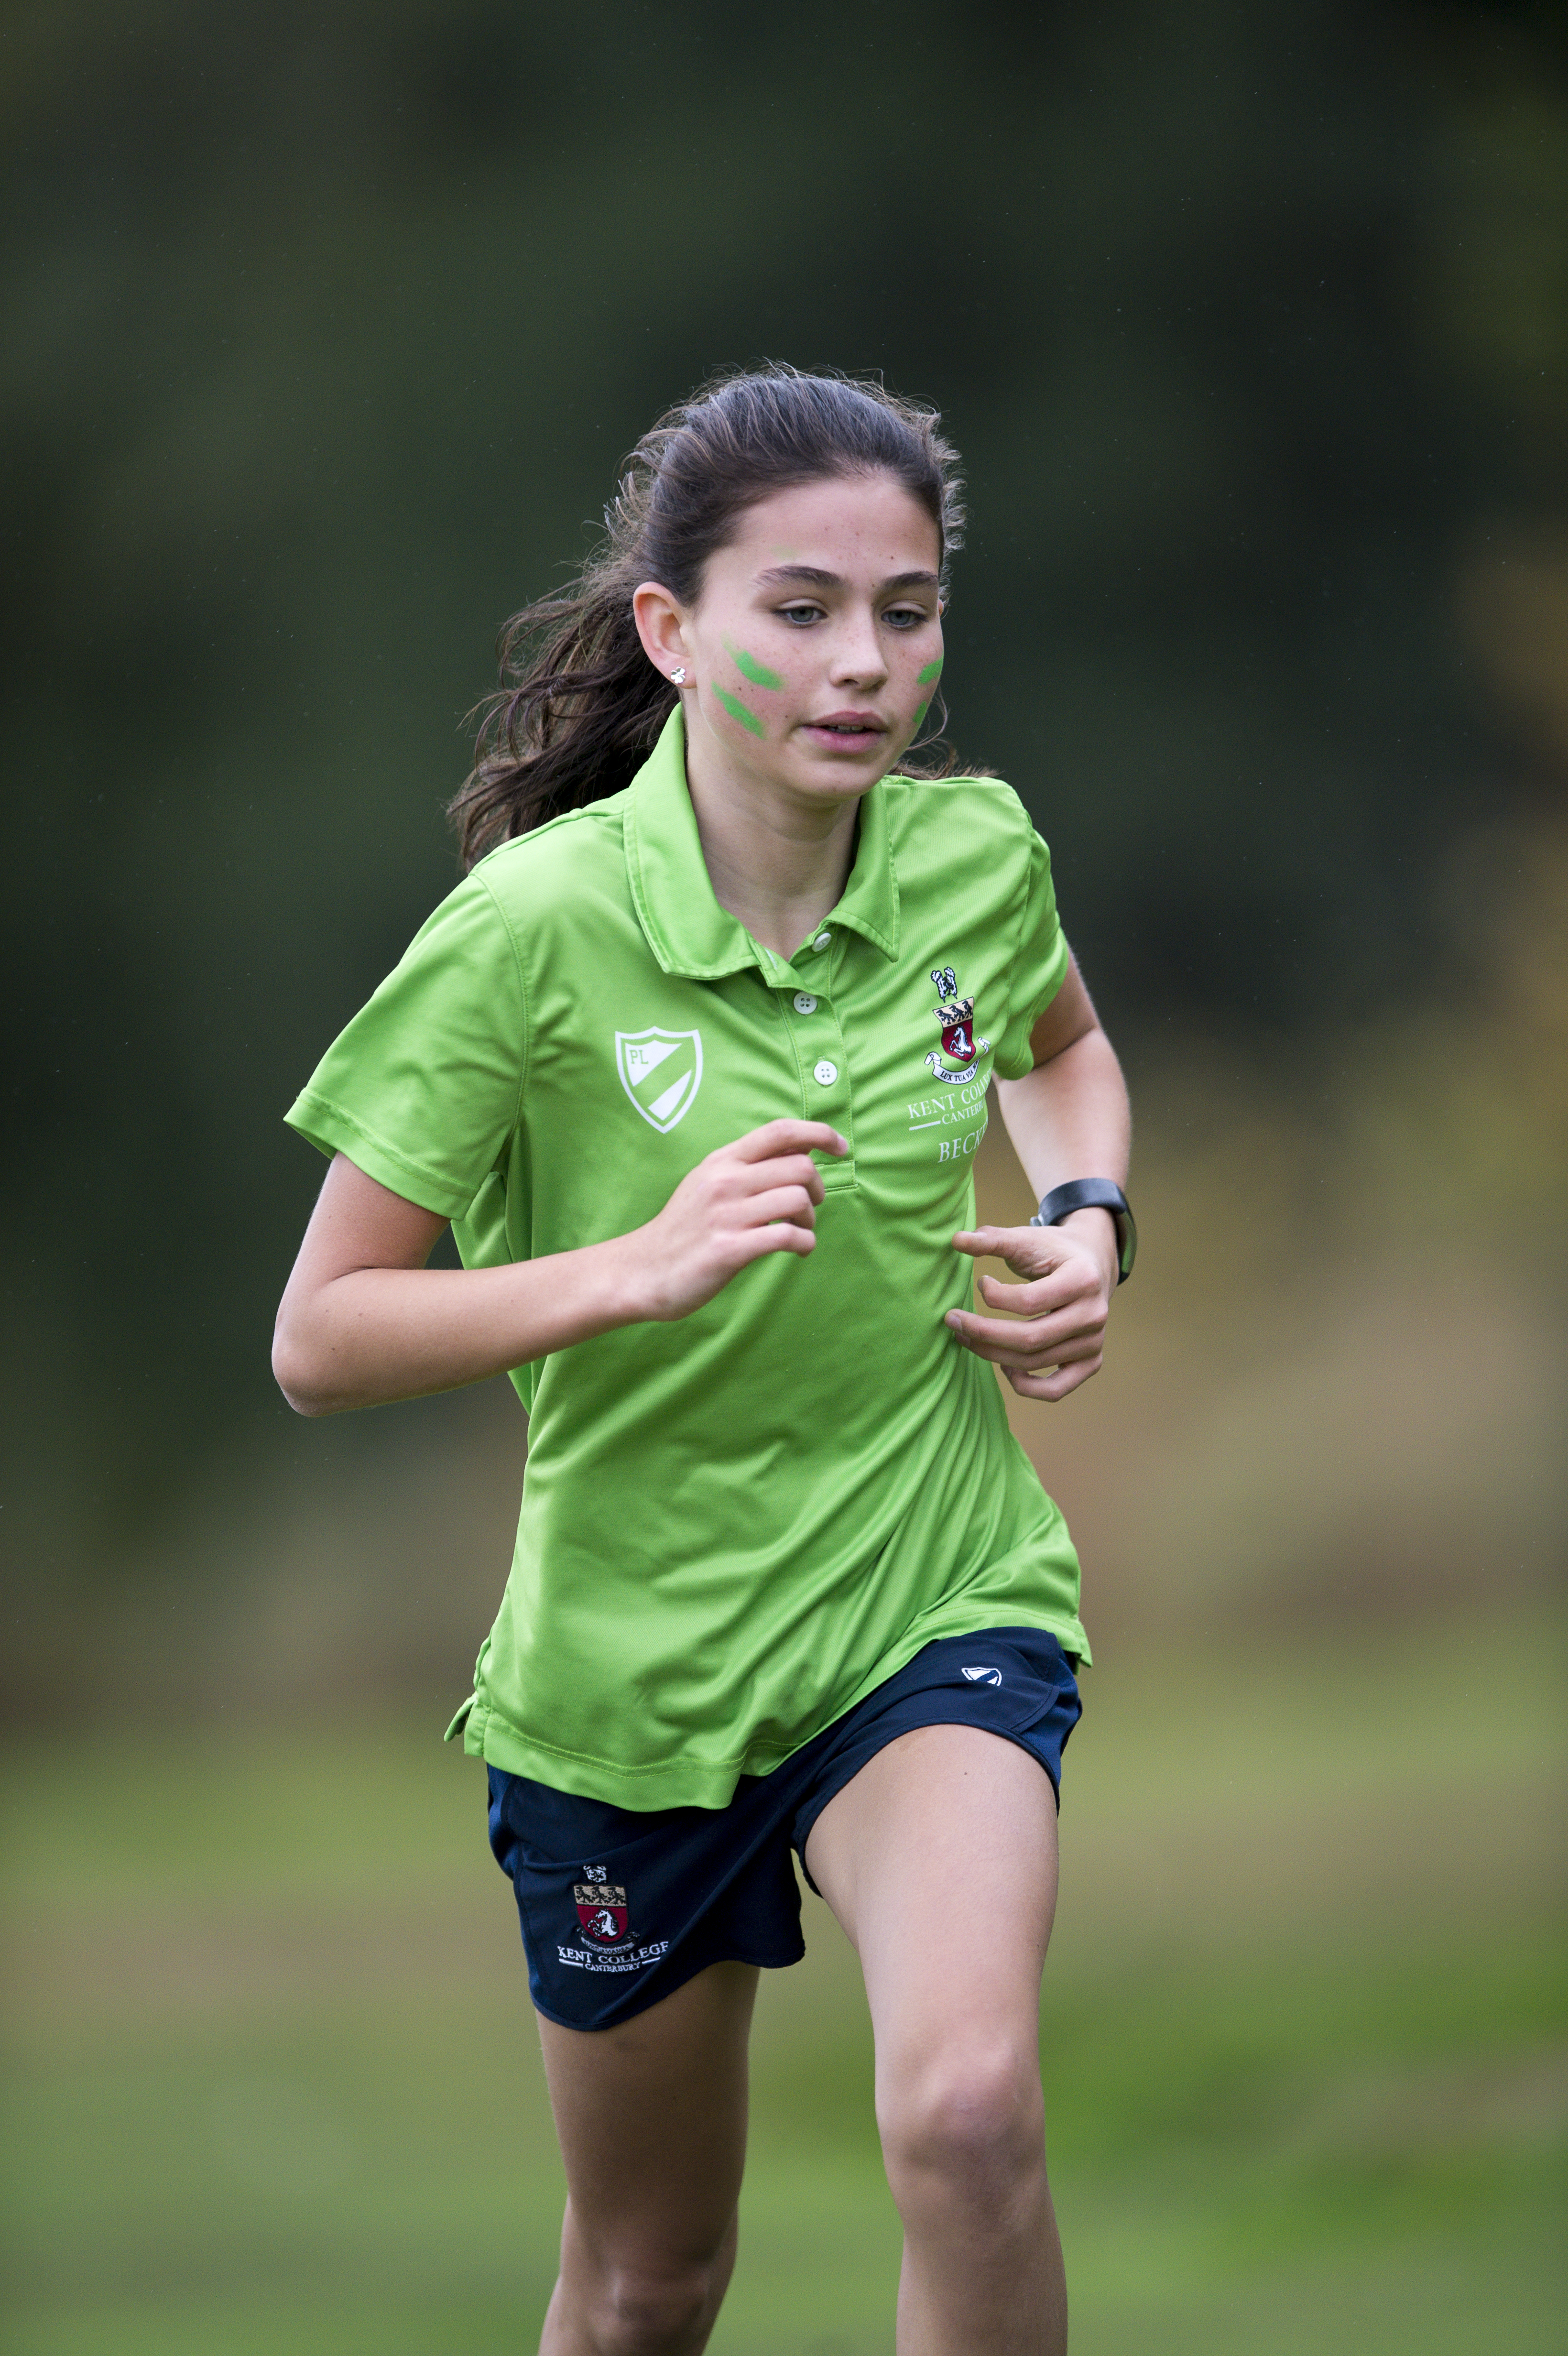 Kent Cross Country Championship